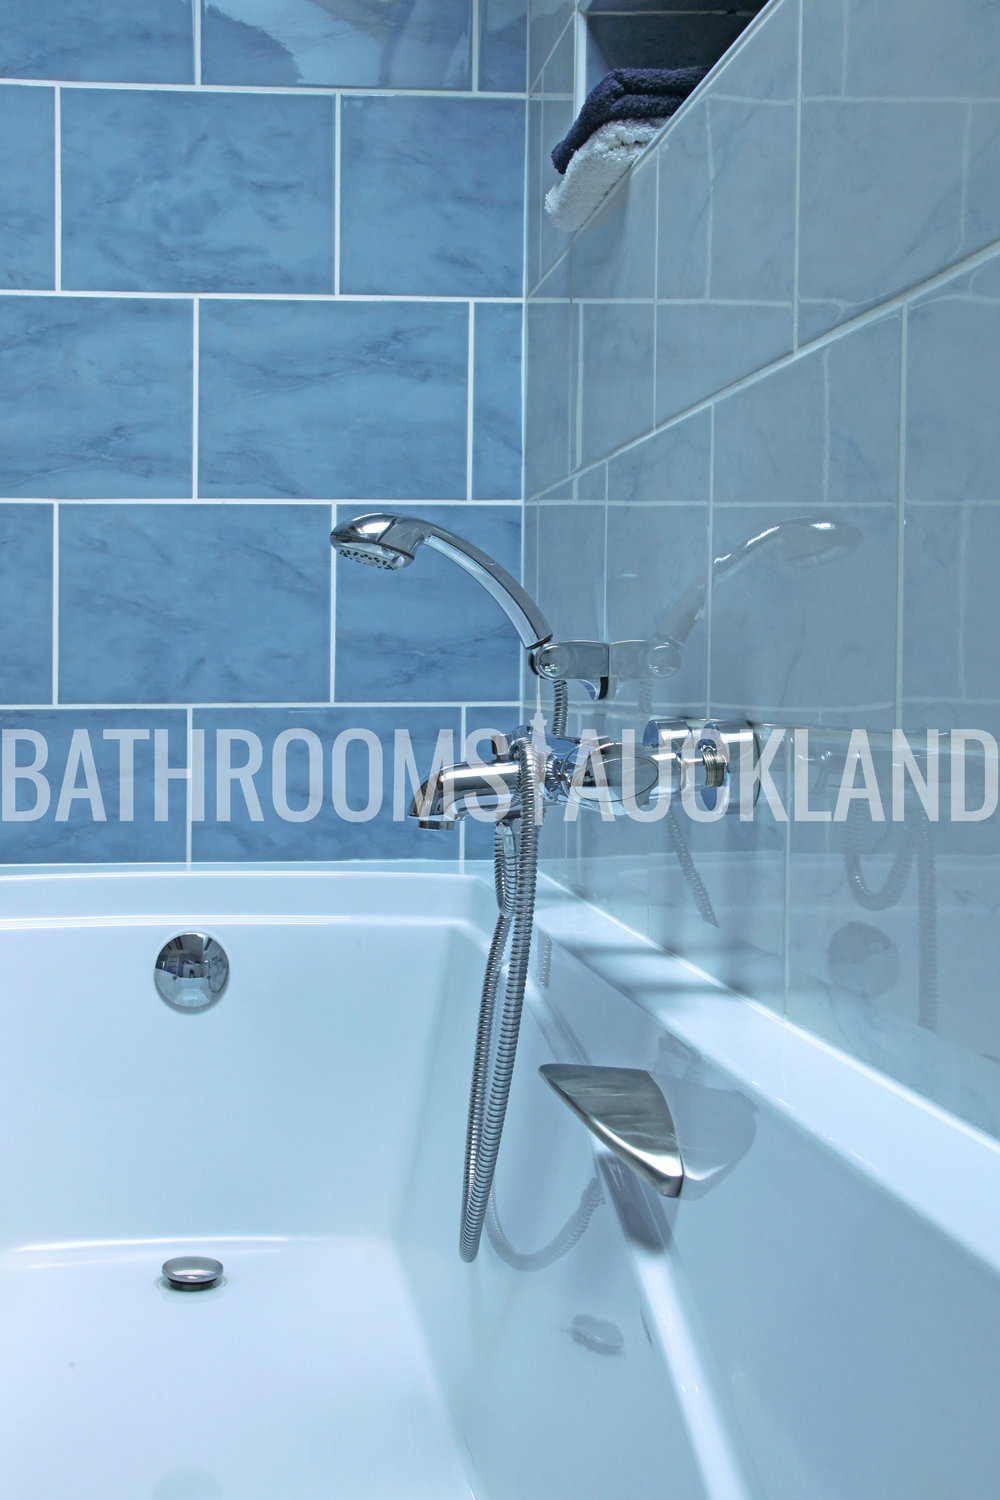 Bathrooms Auckland Renovation_Bathrooms In Auckland_Bathroom Renovation_Bathrooms Renovation_Bathrooms Auckland Renovation .1212.jpg